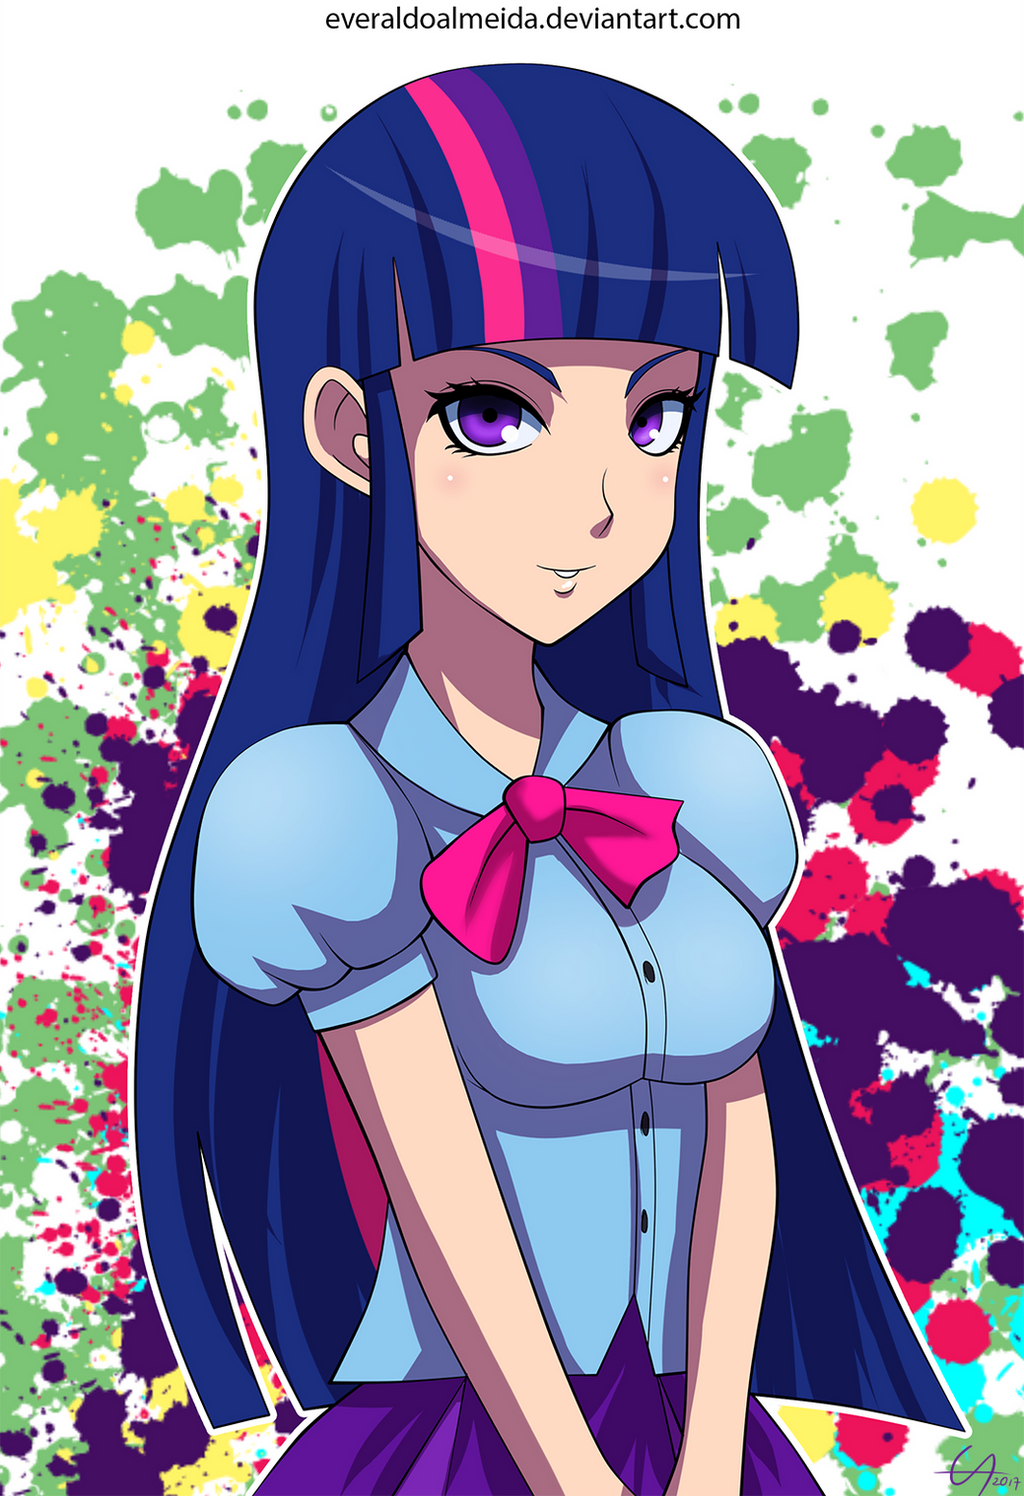 MLP - Human Twilight Sparkle by draftkid